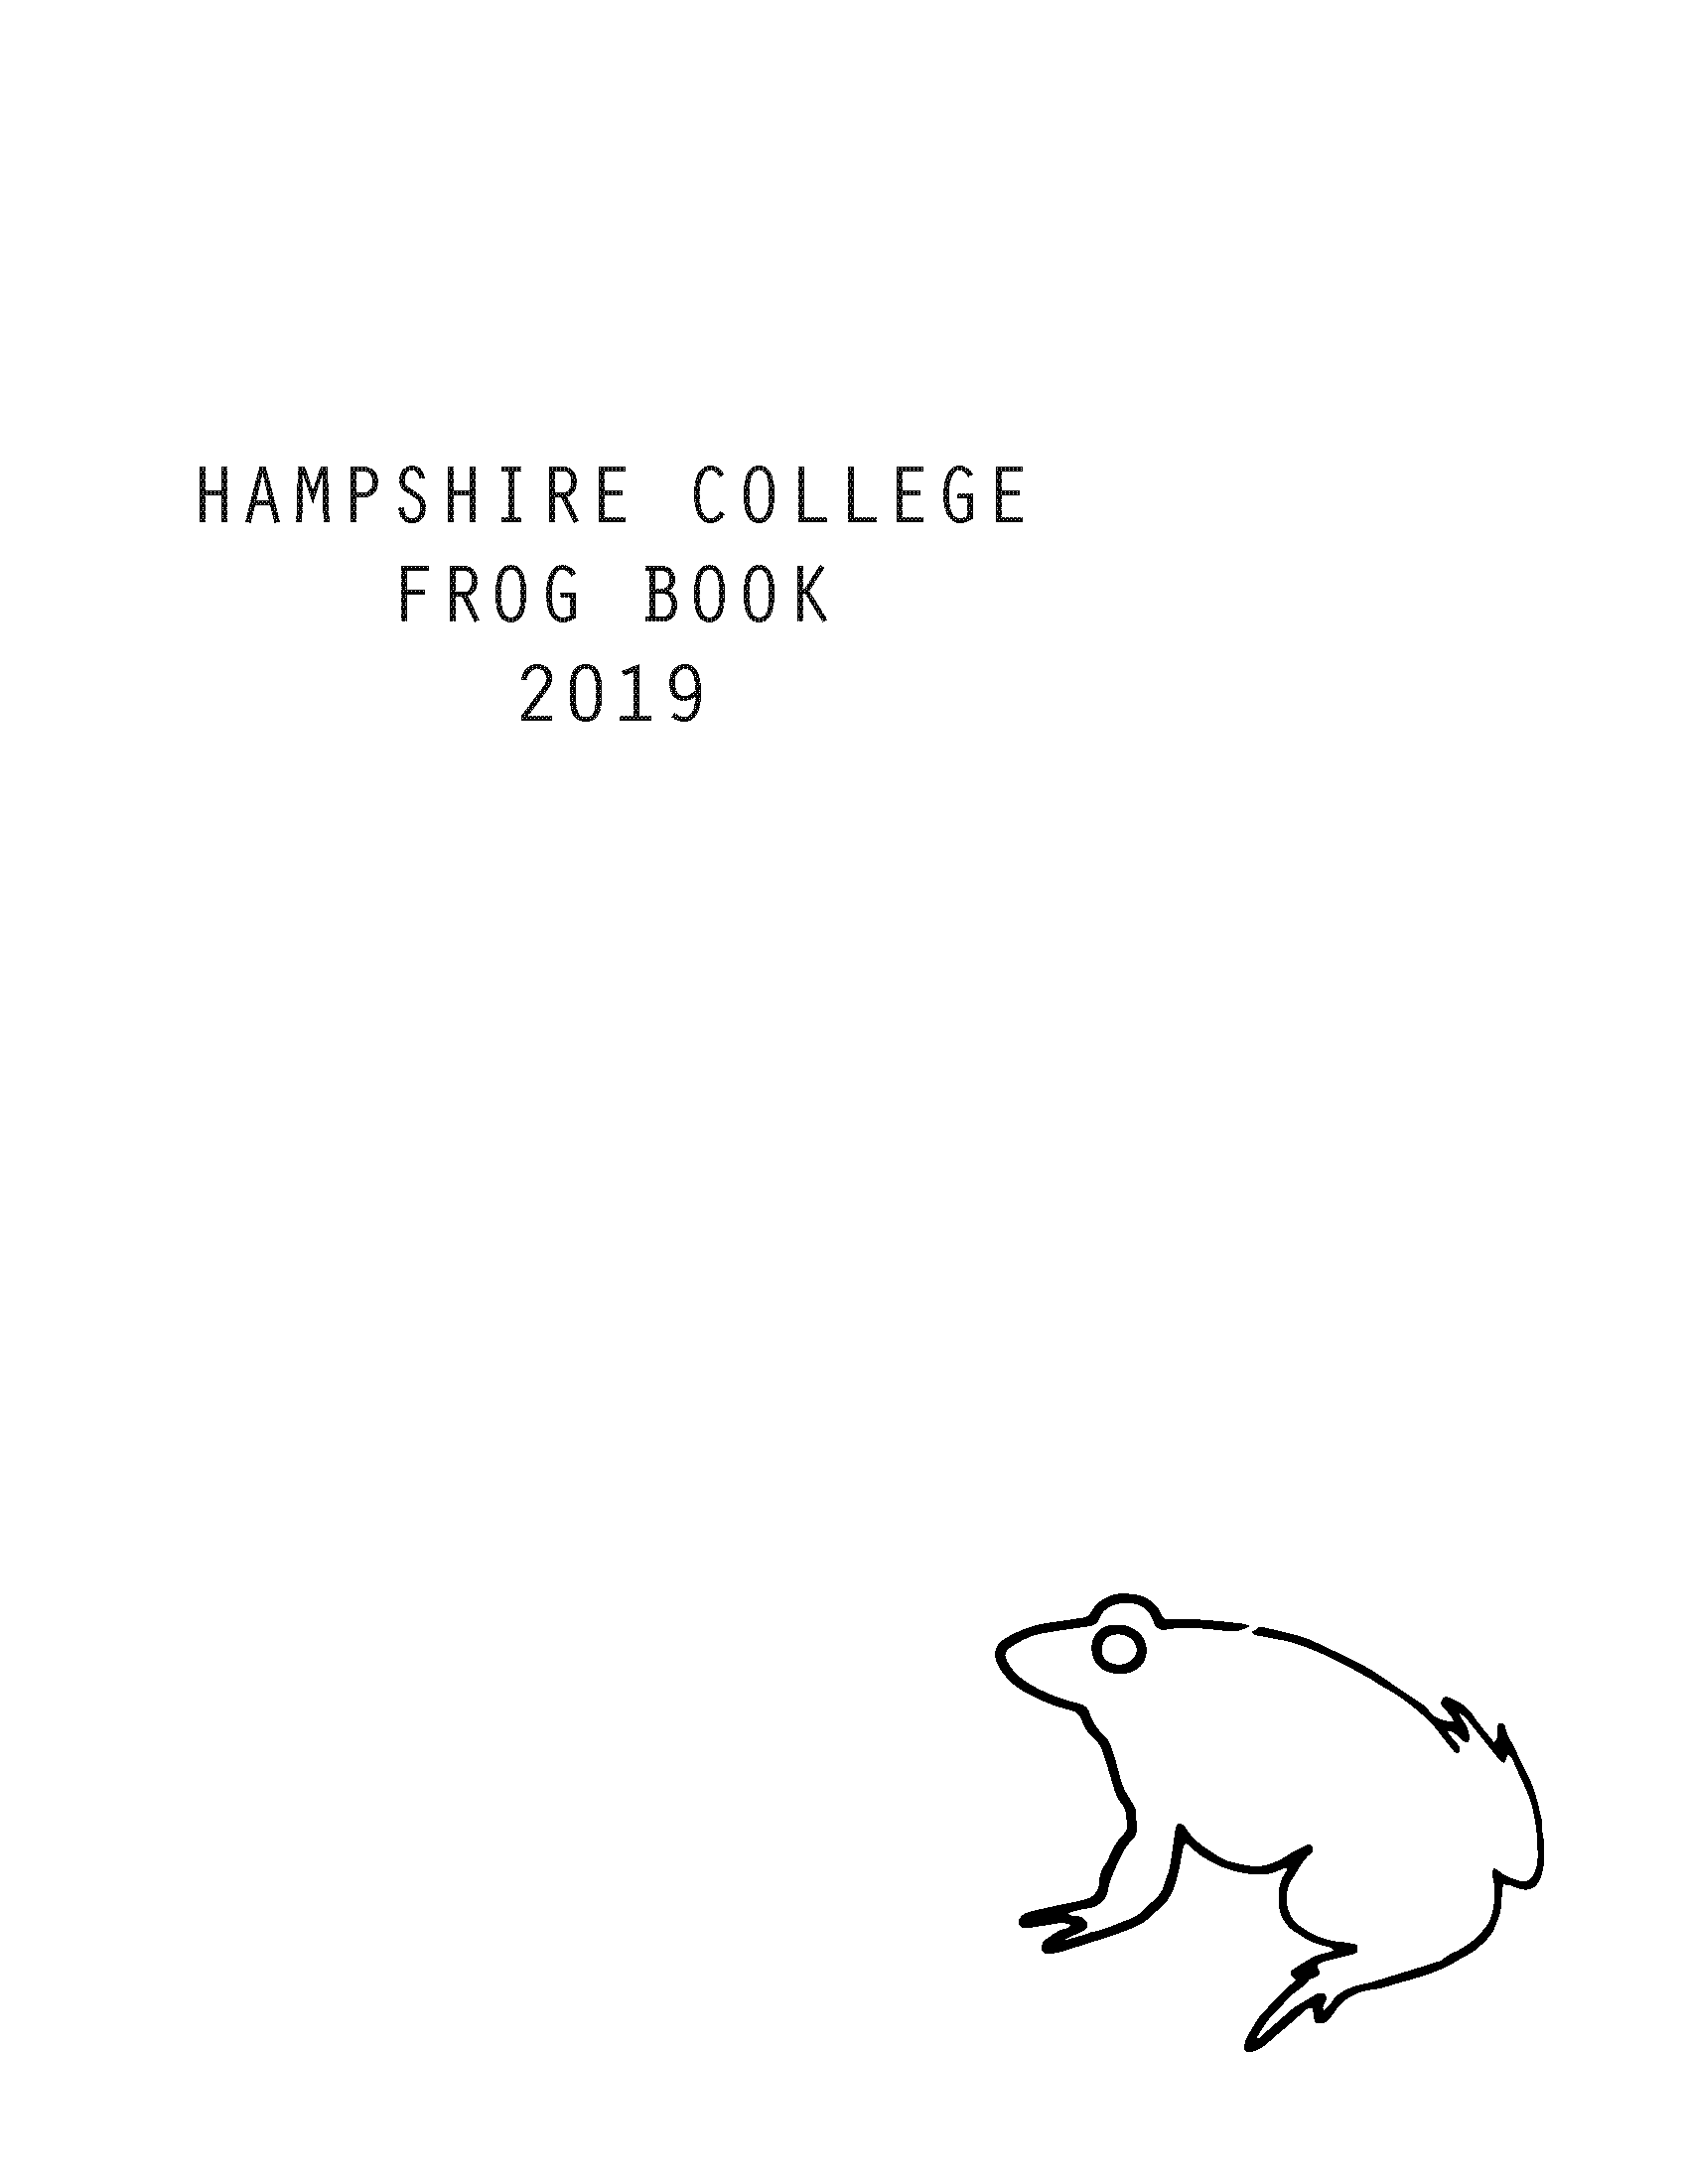 HampshireFrogbook2019 page original 01.png